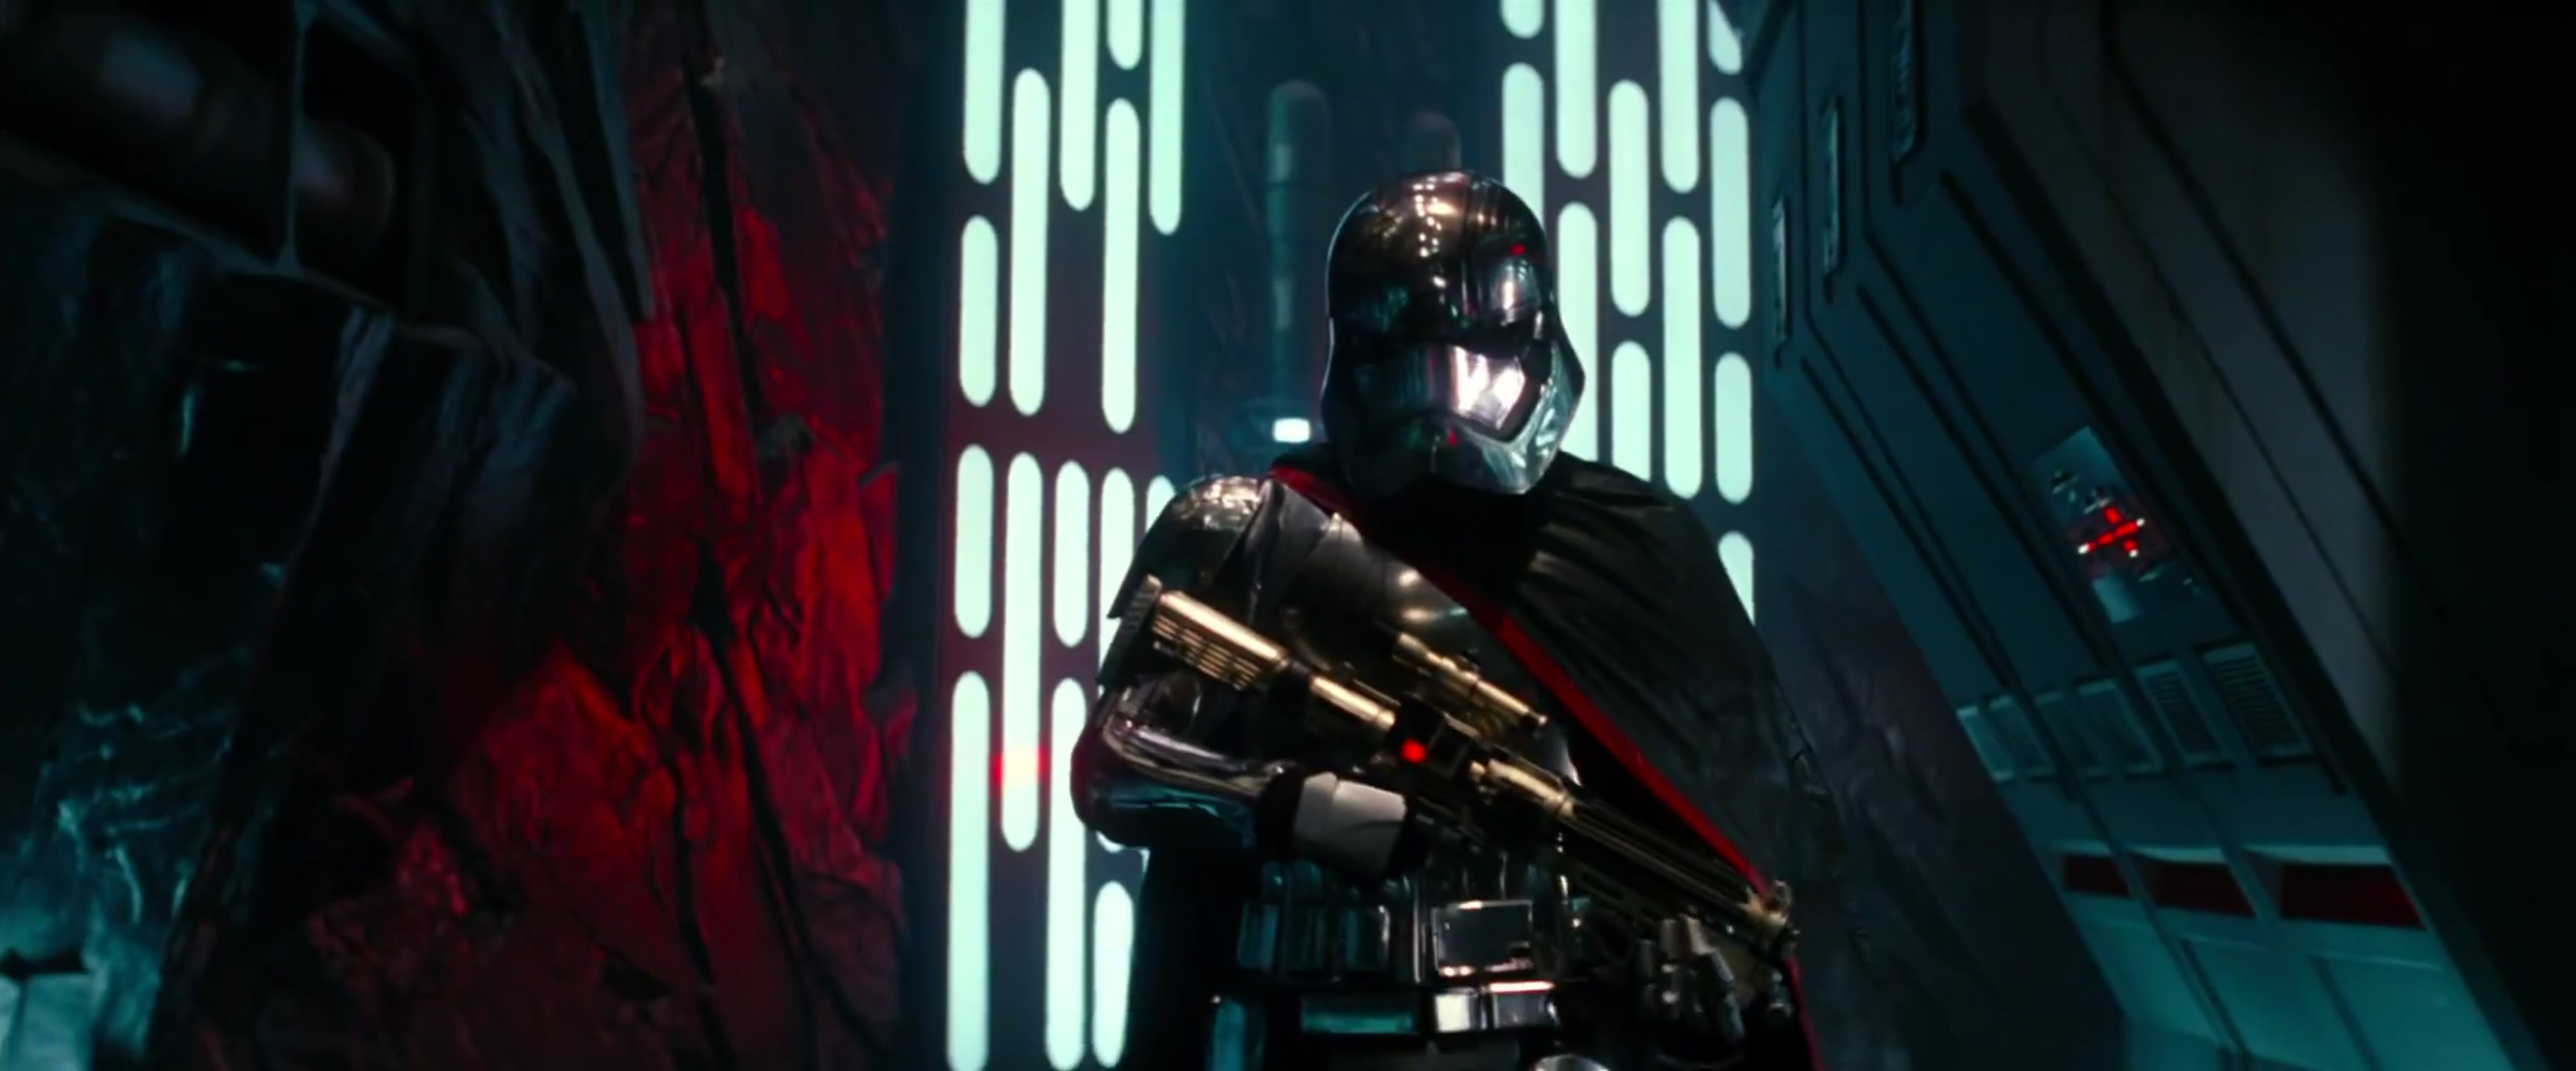 Star-Wars--The-Force-Awakens-Official